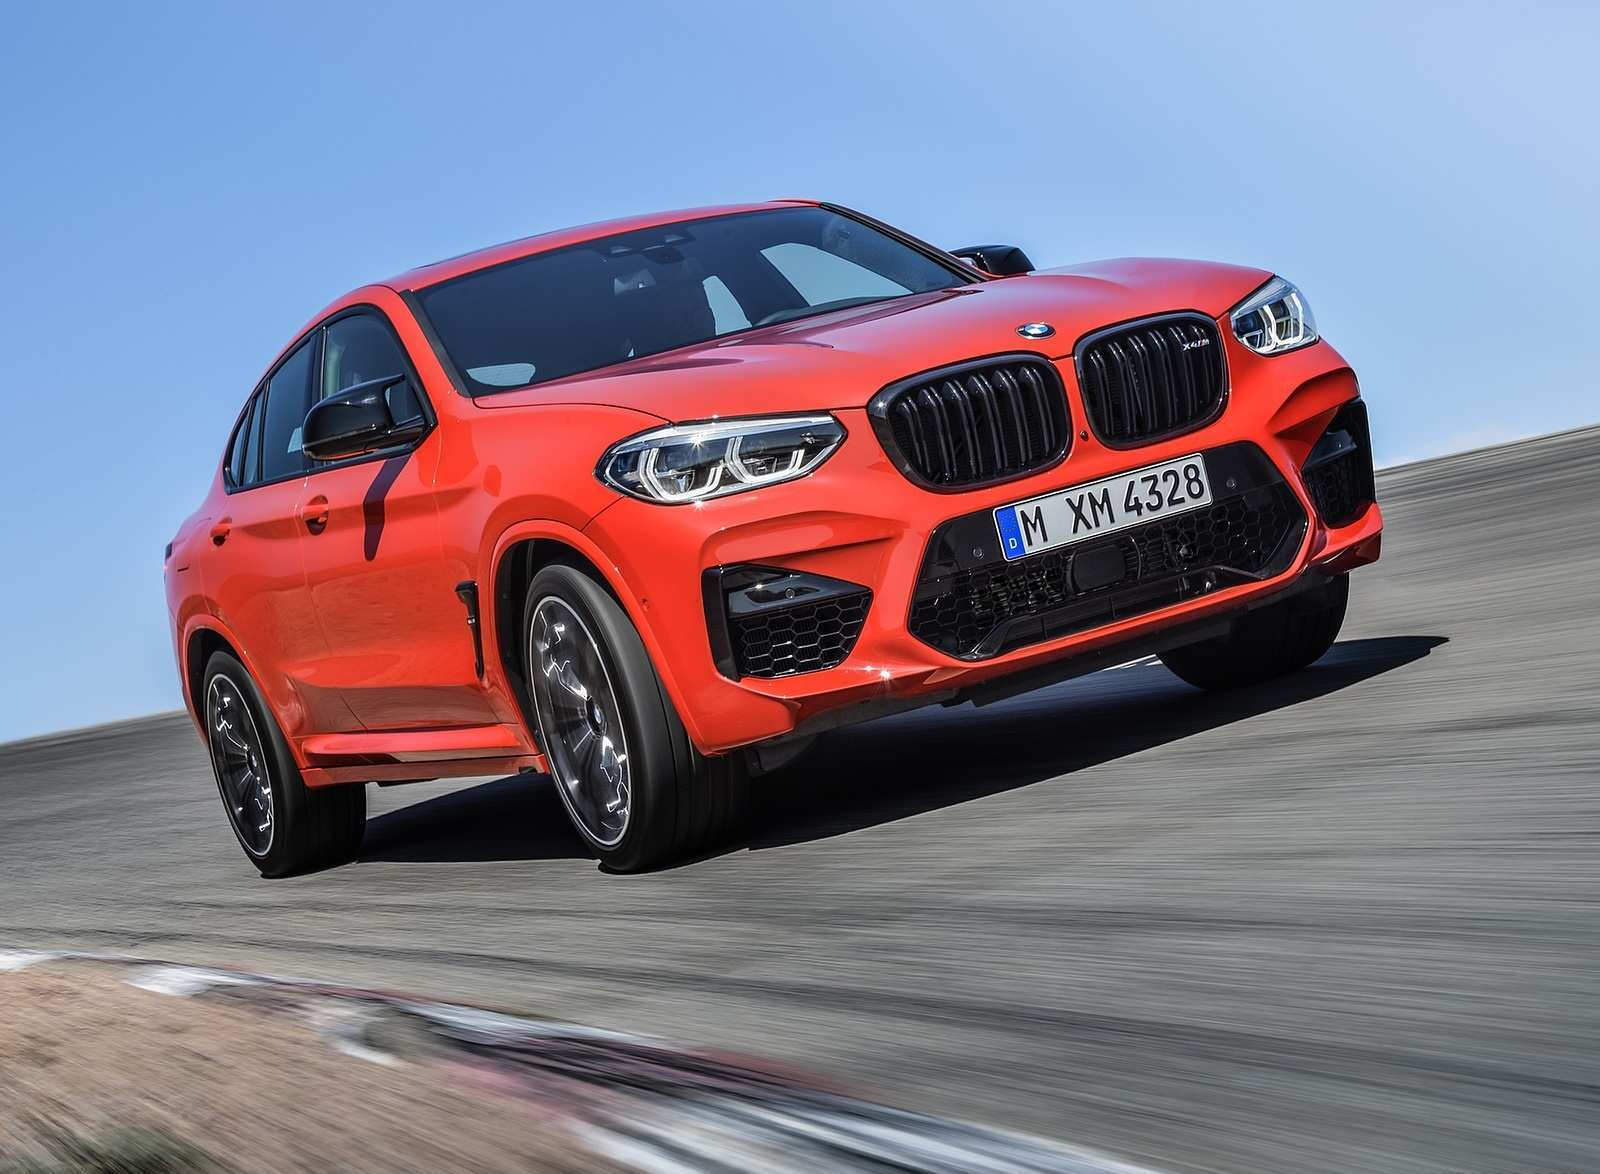 95 The Best 2020 BMW X4 Price And Review